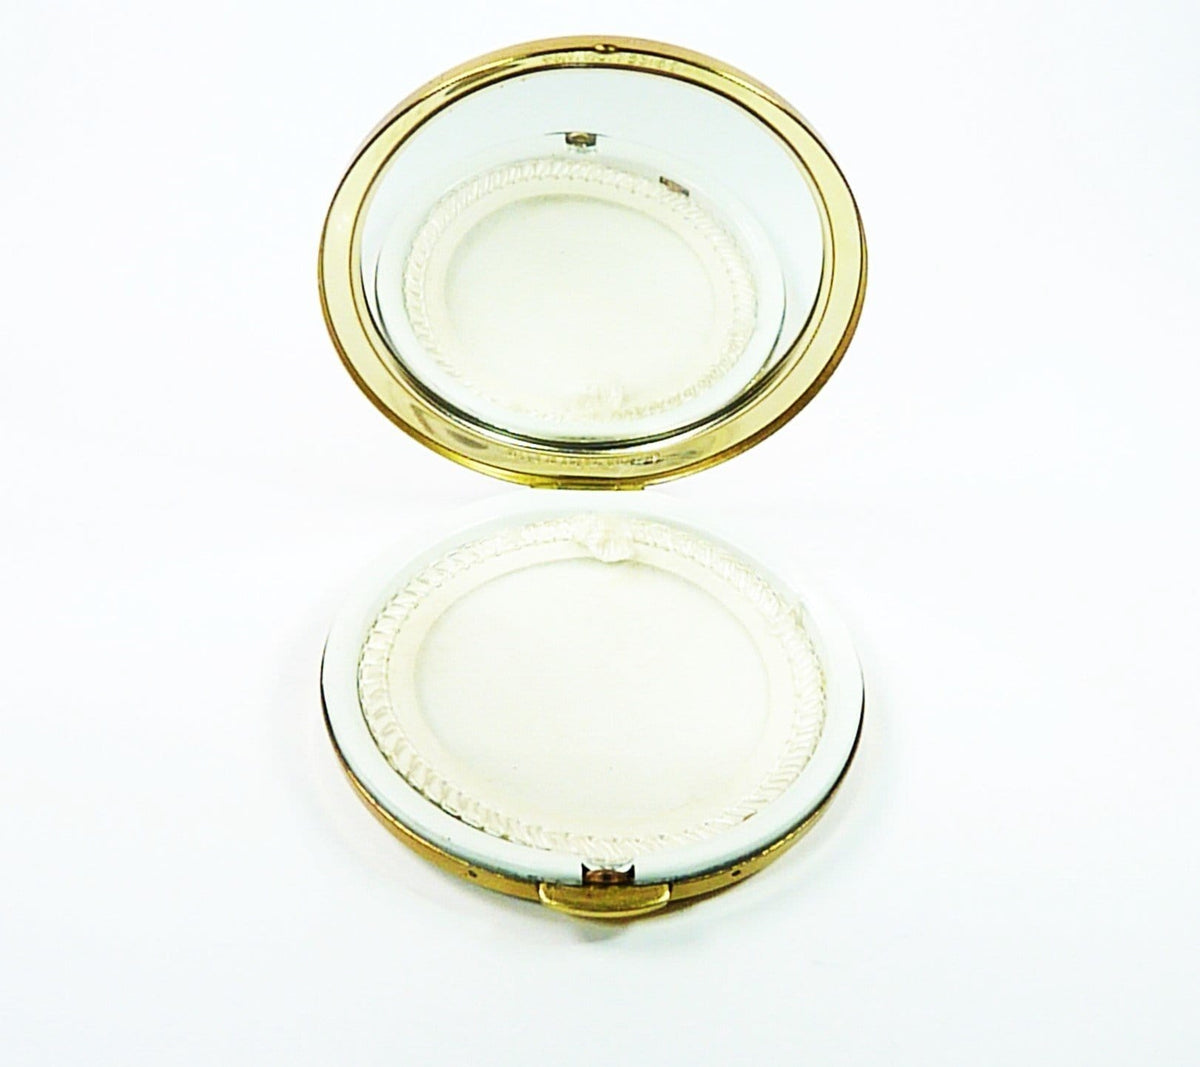 Vintage Loose Powder Compact With Enamel Lid